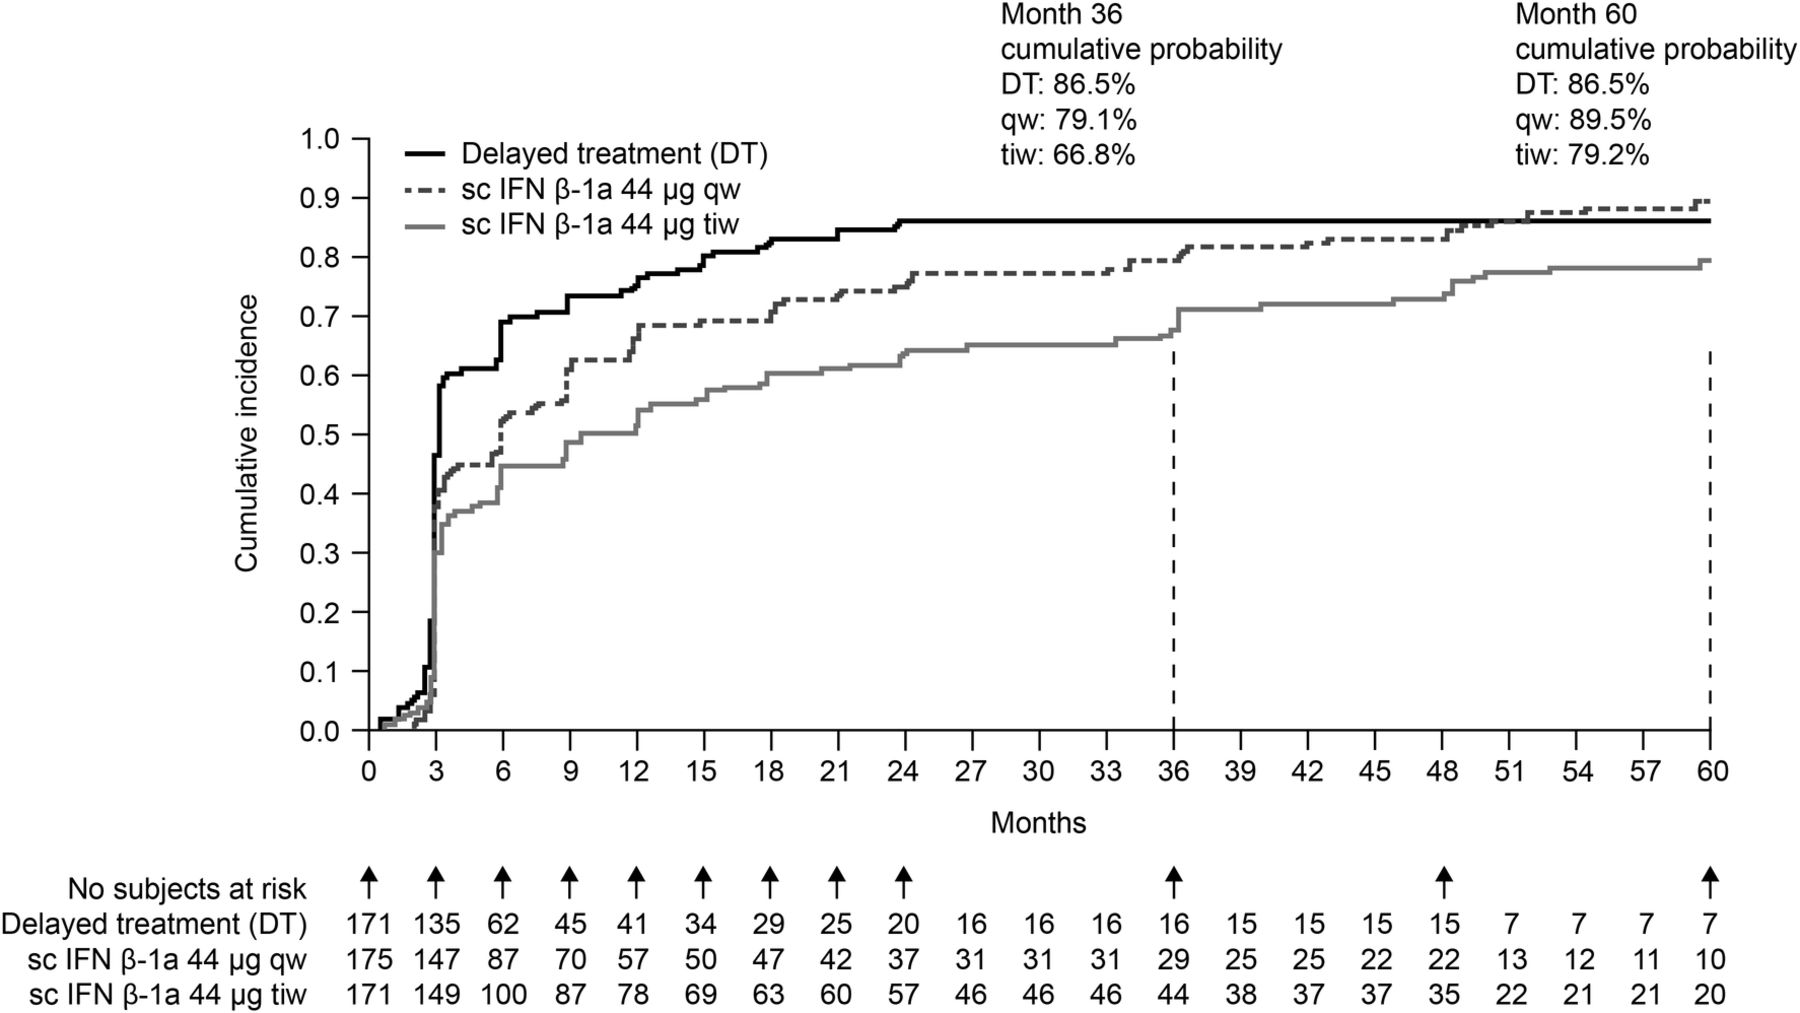 Subcutaneous interferon β-1a in the treatment of clinically